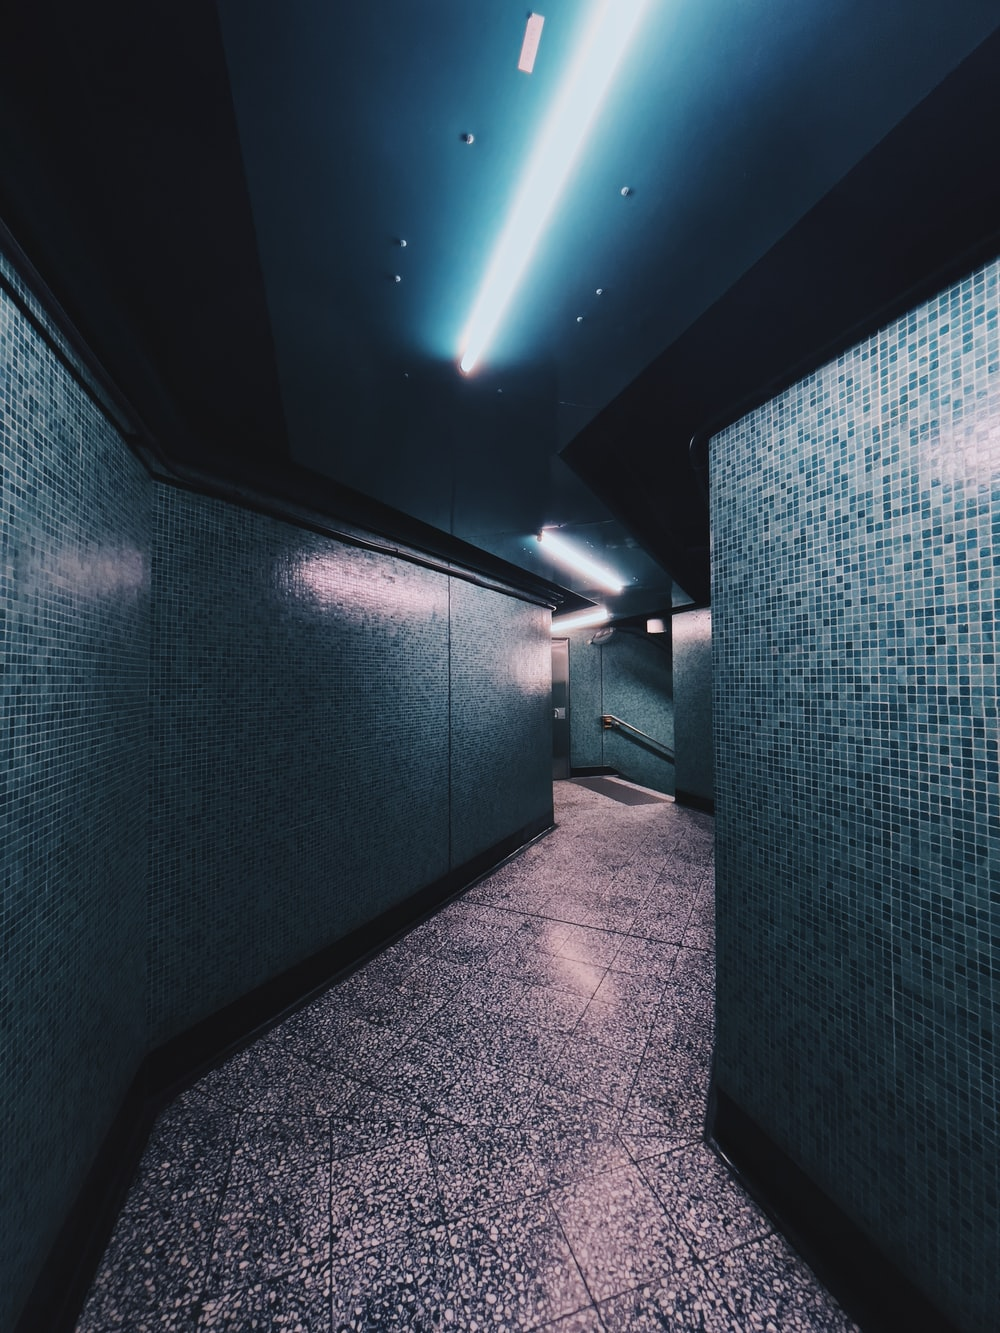 blue and white hallway with lights turned on in room